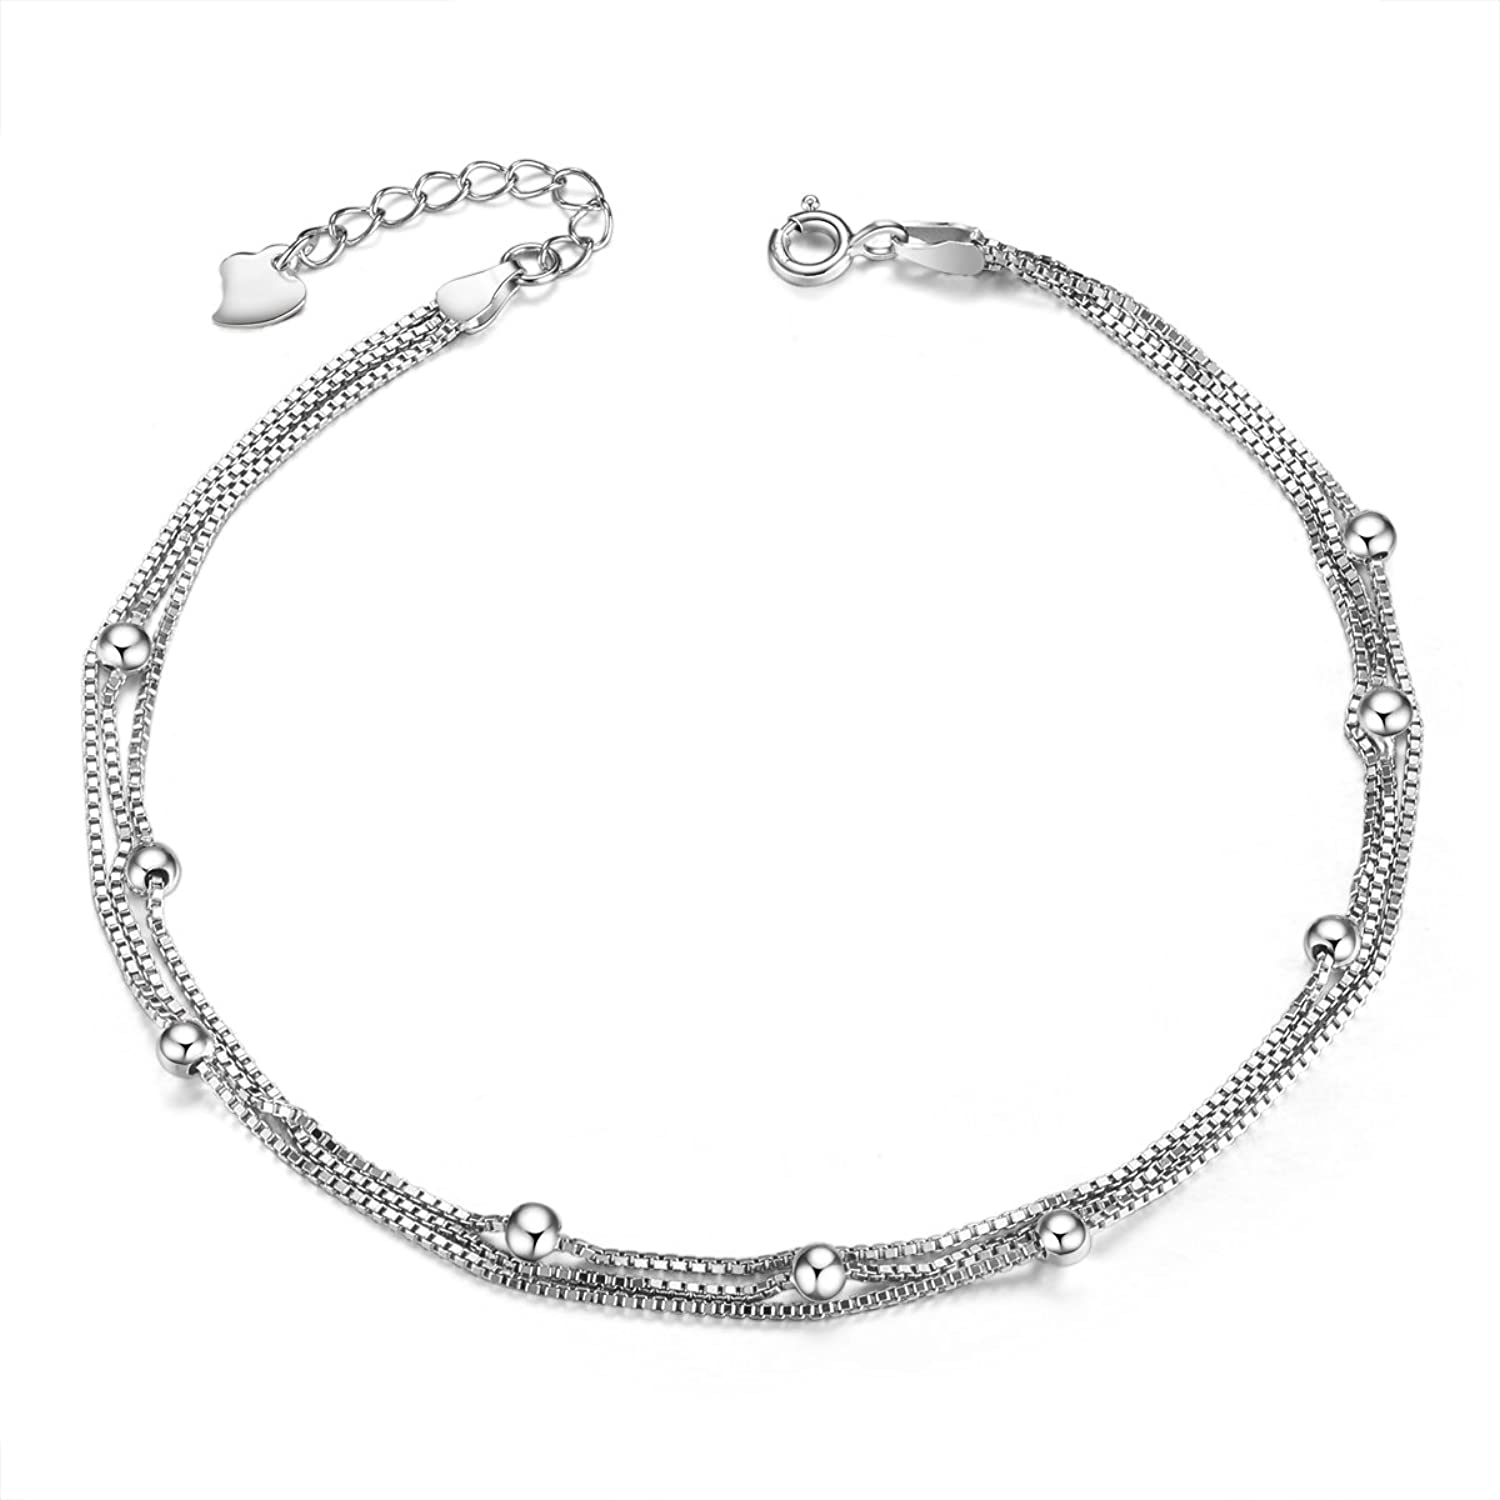 inch for charmsstory anklets bracelet girls heart charms jewelry silver c ankle anklet cute